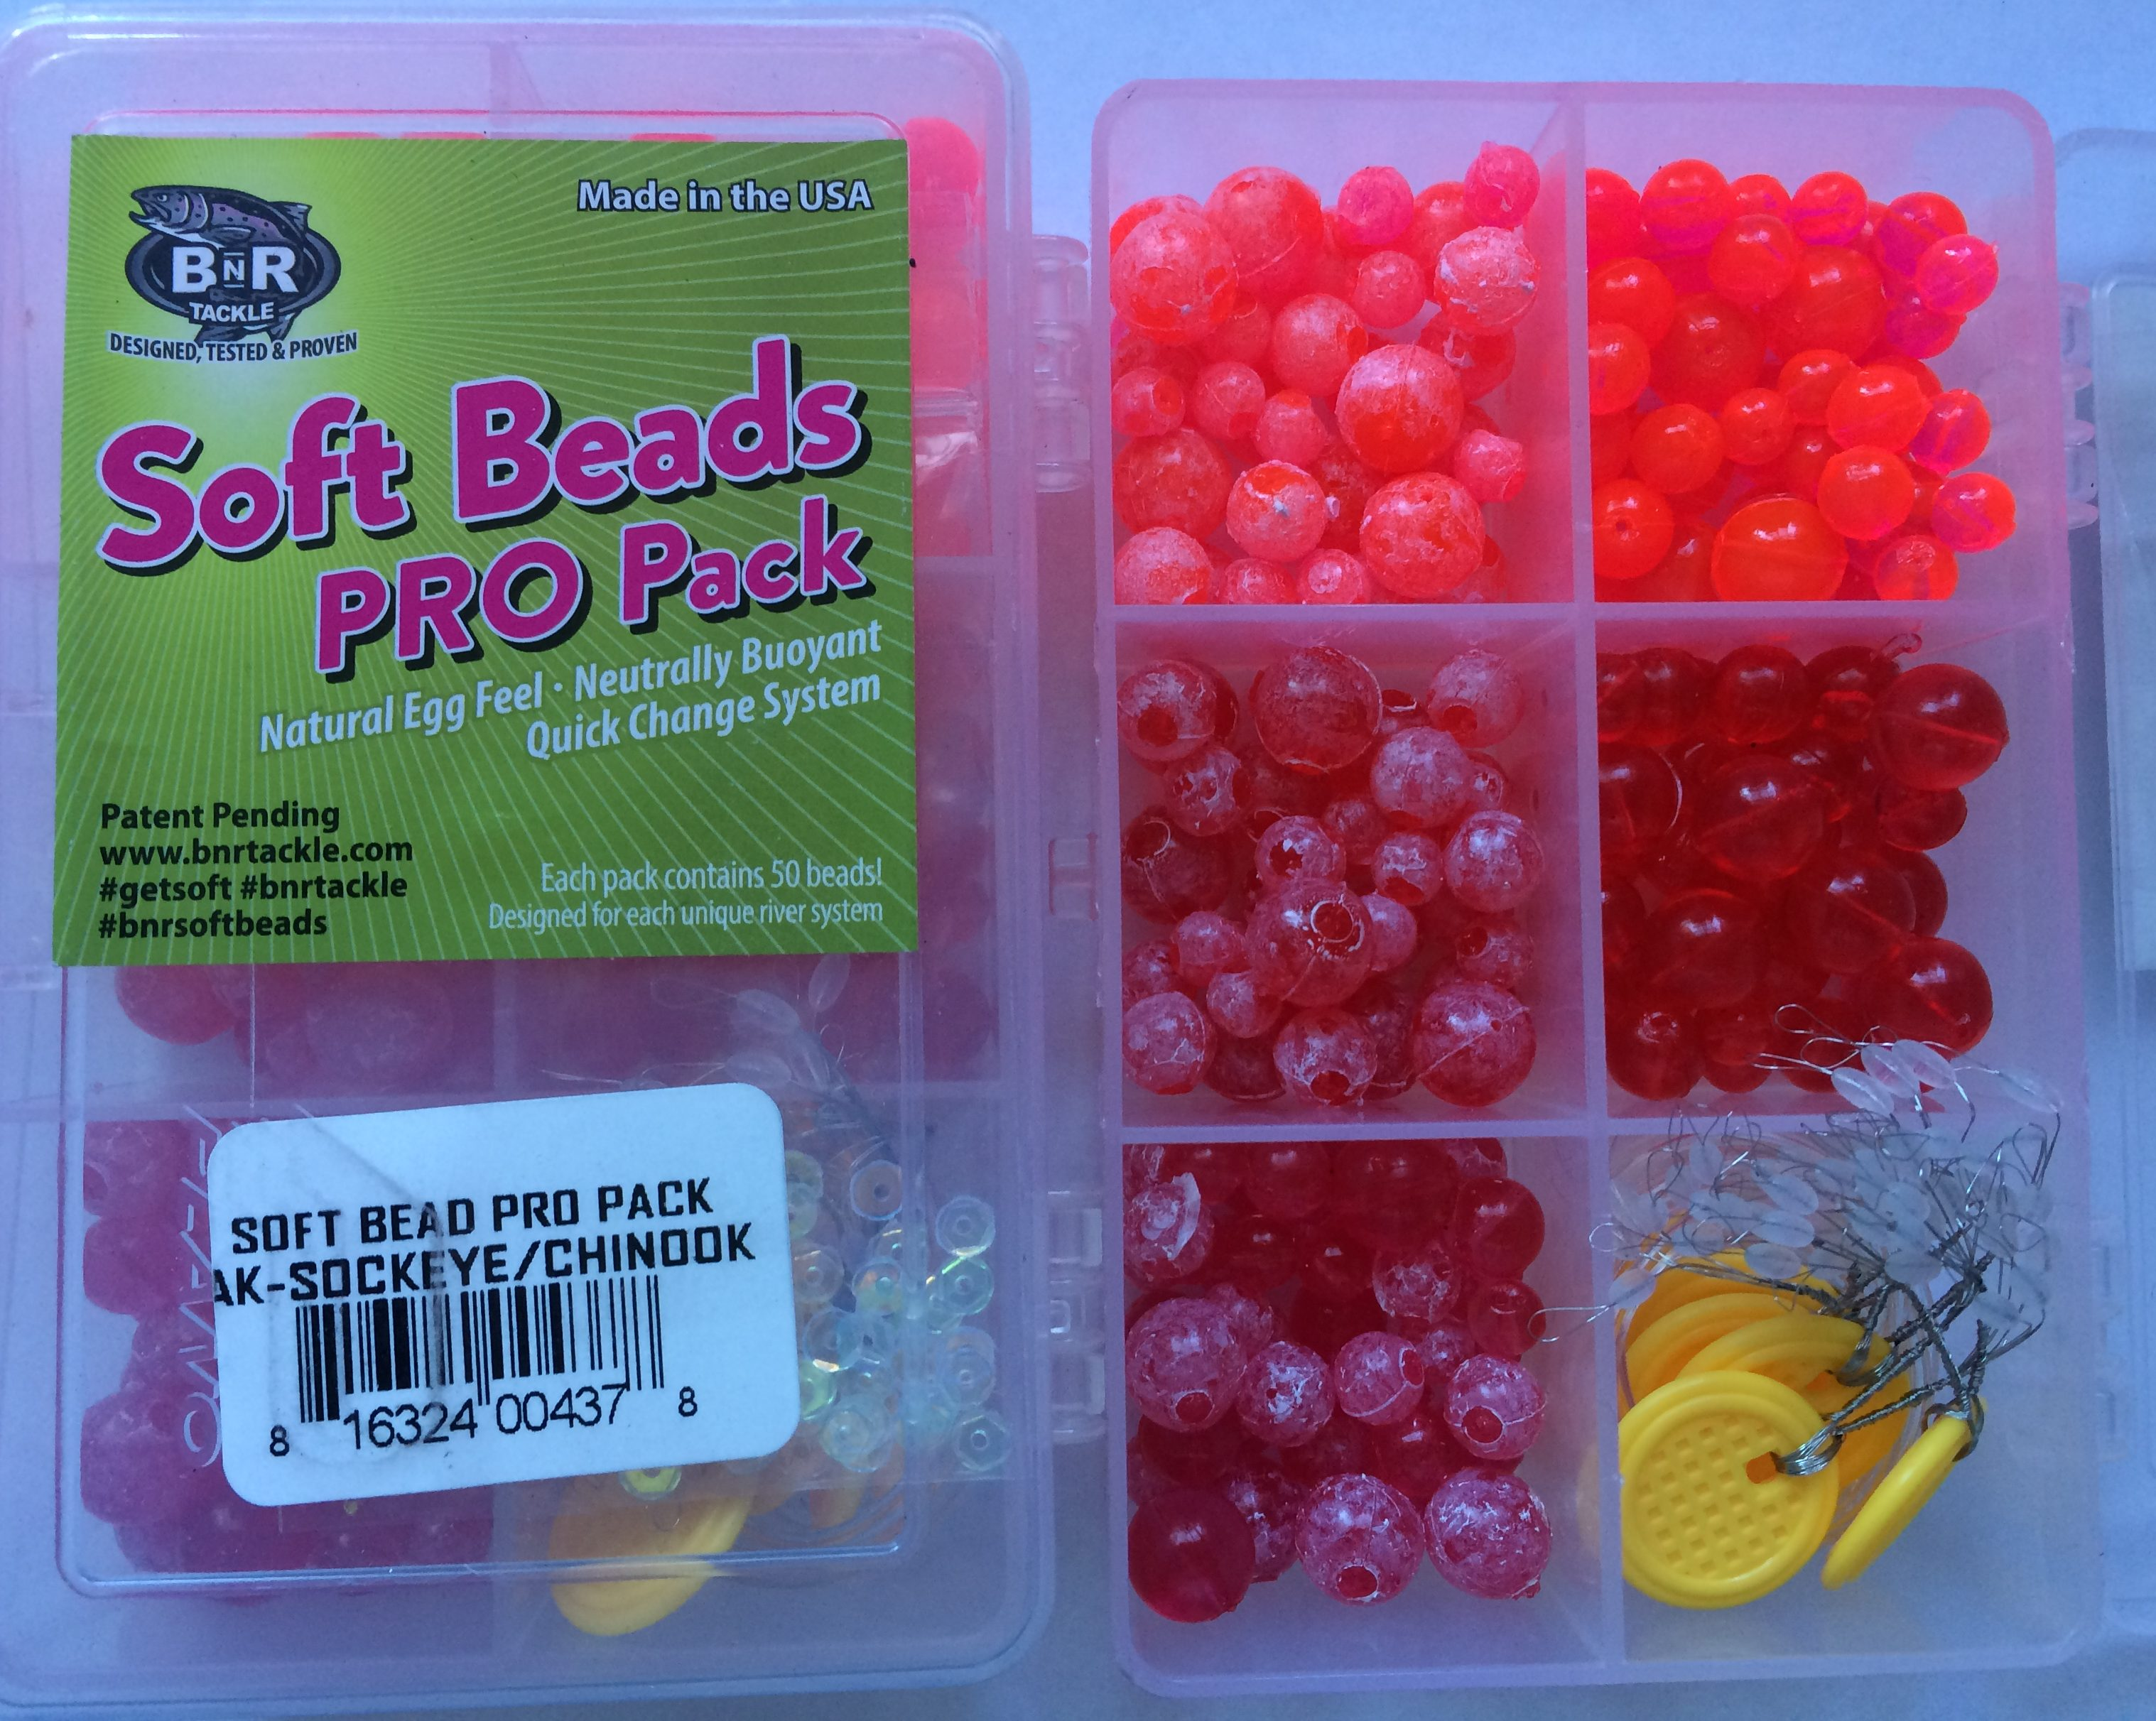 Trout Pro Packs – AK Sockeye/Chinook